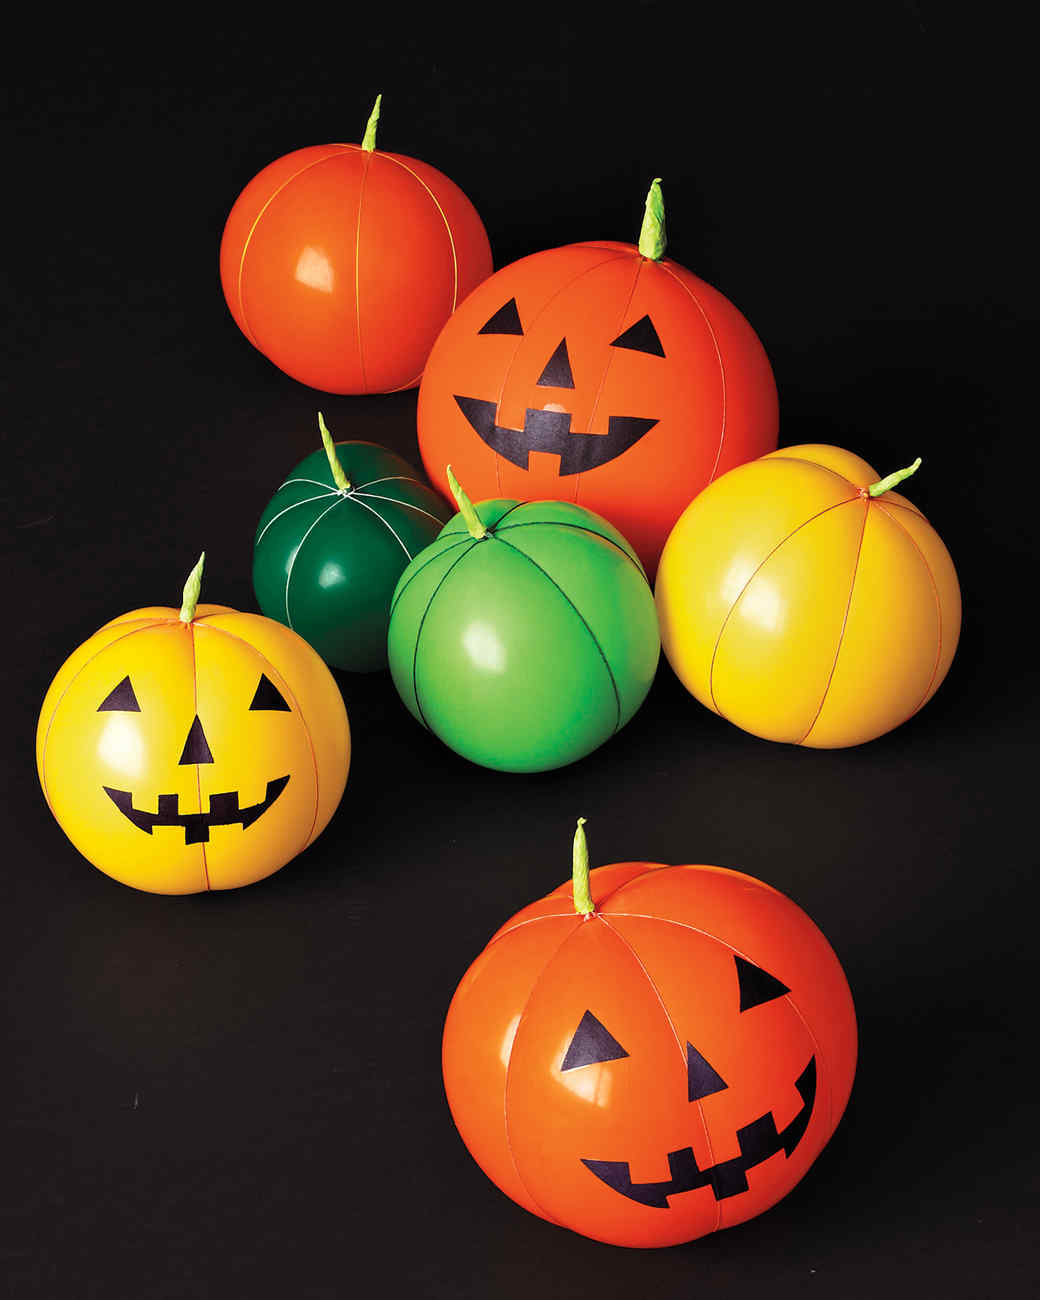 halloween crafts ideas martha stewart - Diy Halloween Crafts